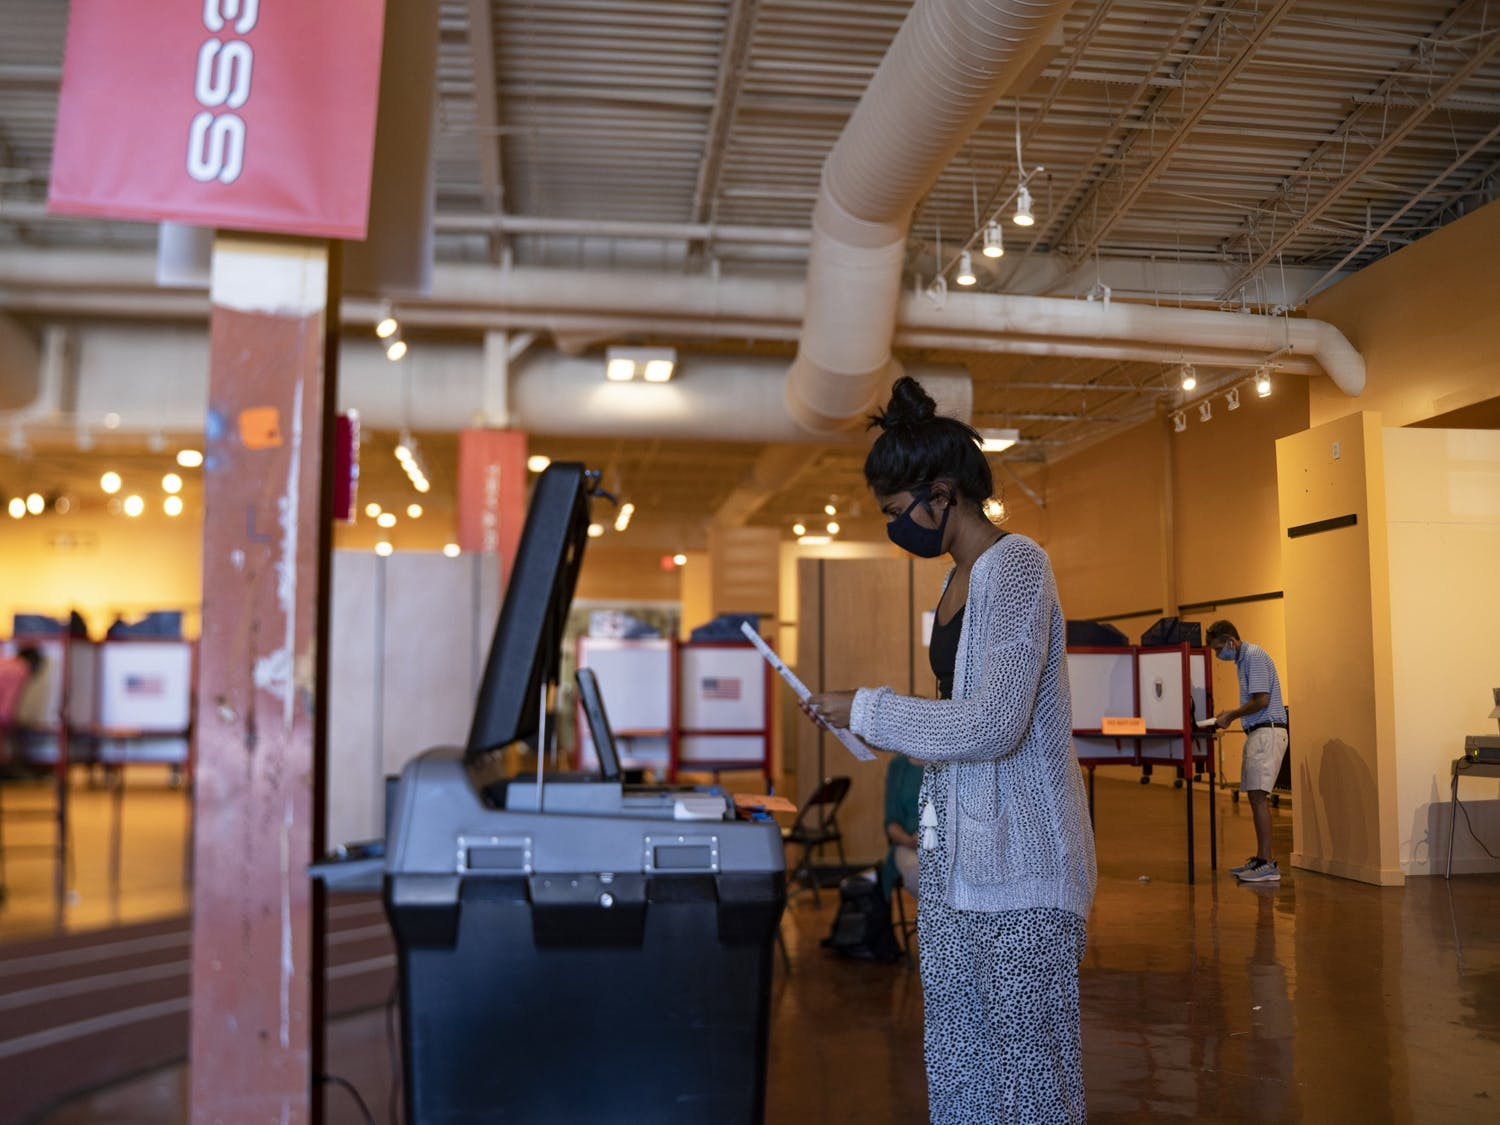 Nisha Iyer turns in her ballot at the early voting site at University Place on Tuesday, Oct. 20, 2020.